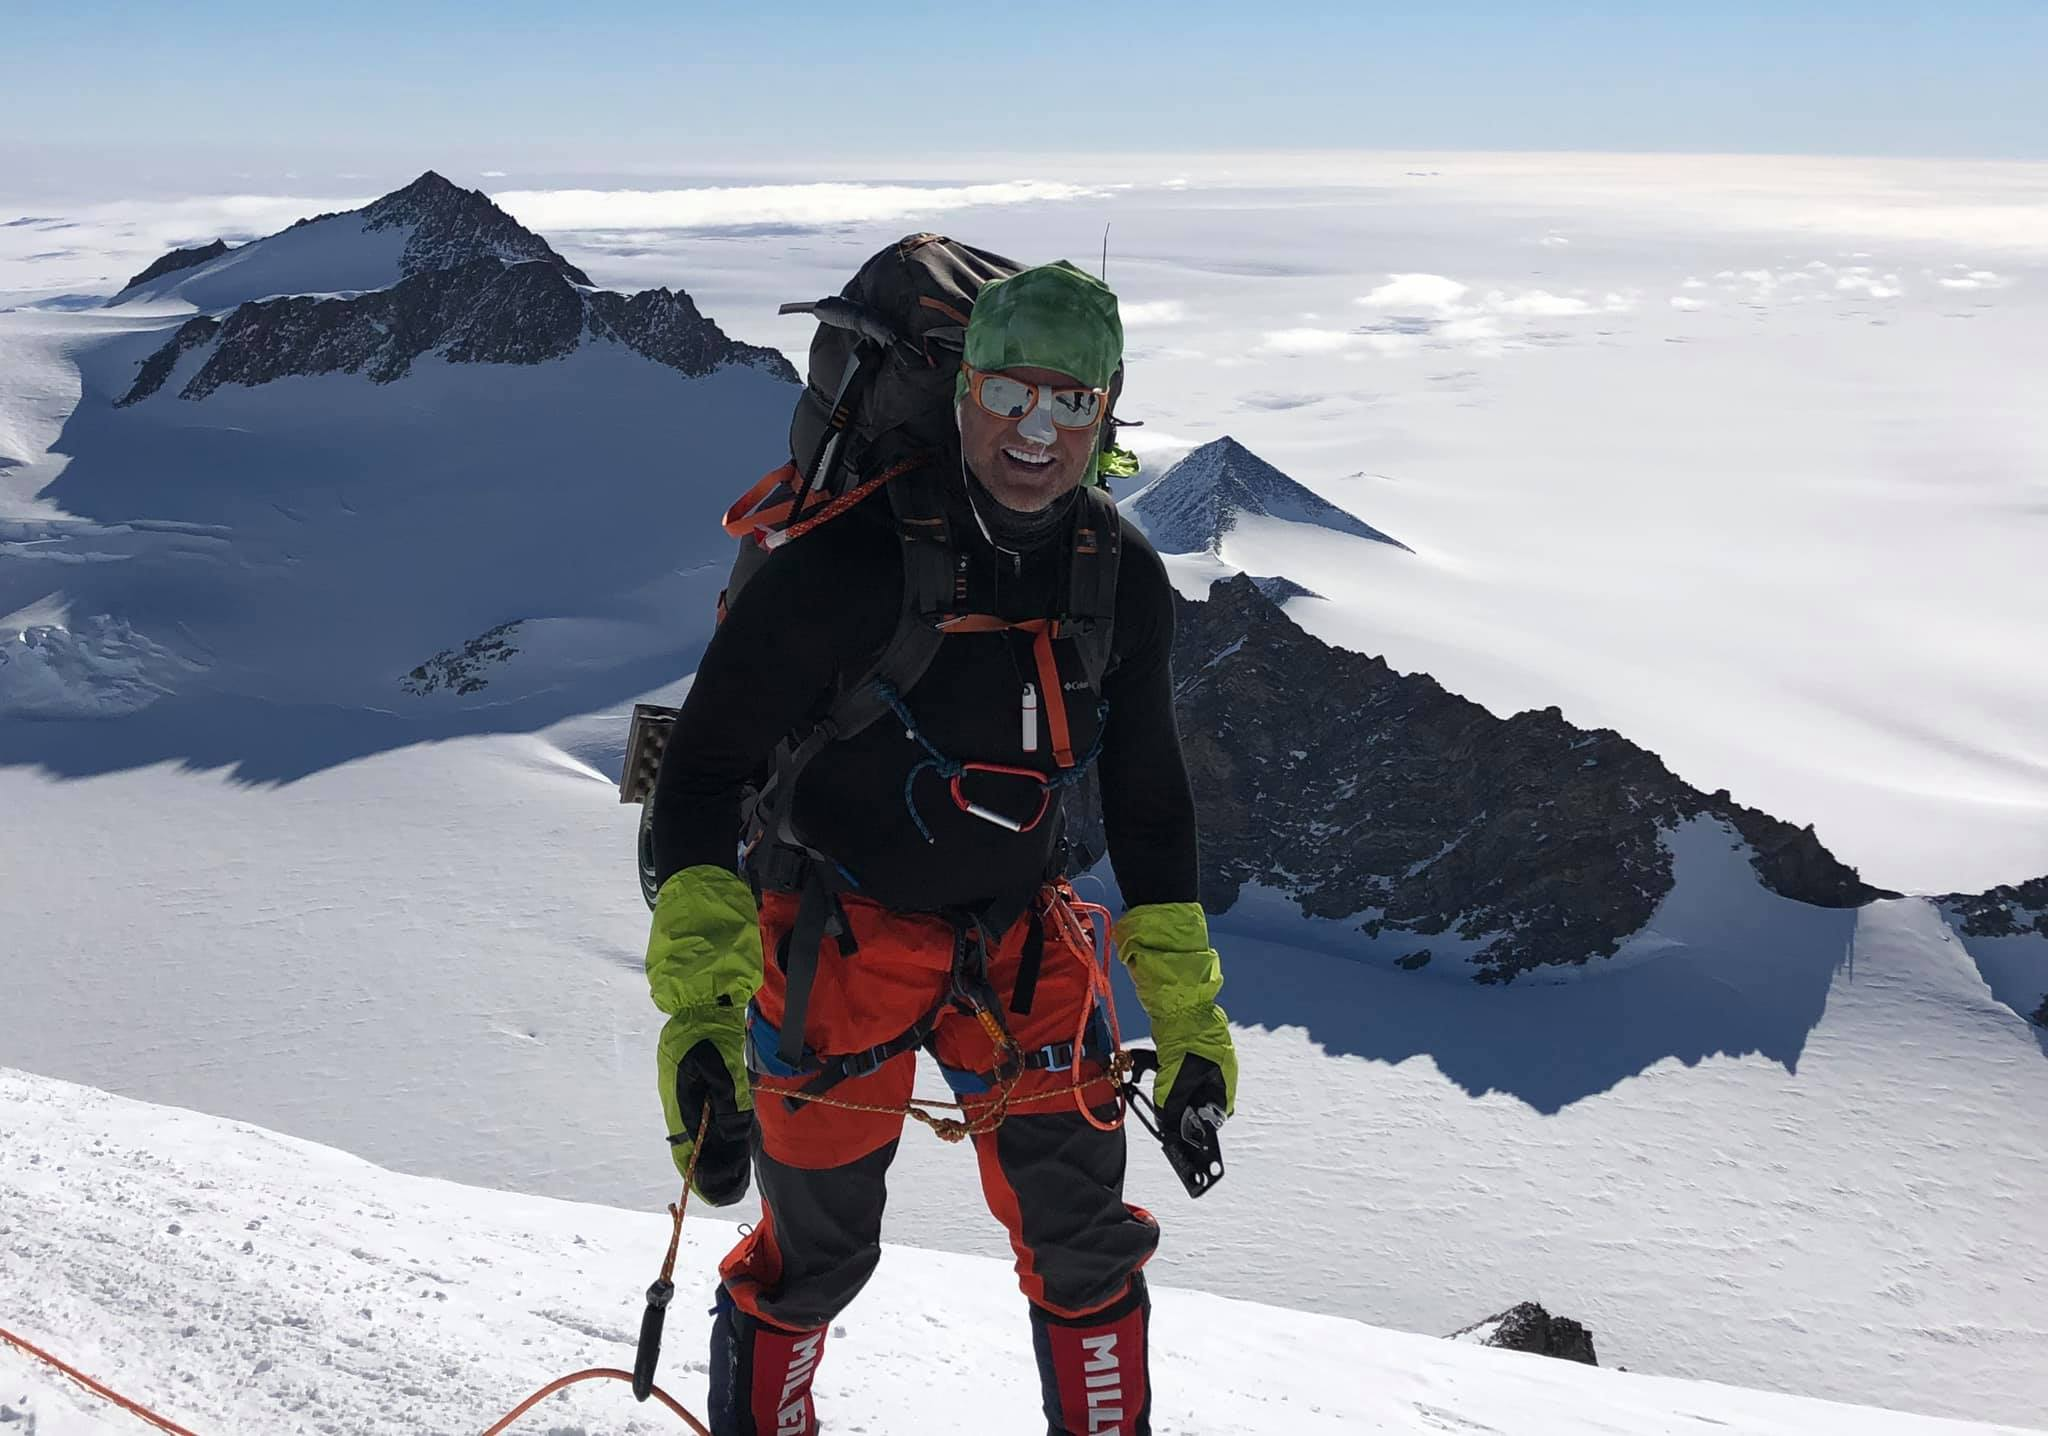 Donald Cash was on his final climb of the Seven Summit climbing mission. Credit: Facebook/Don Cash